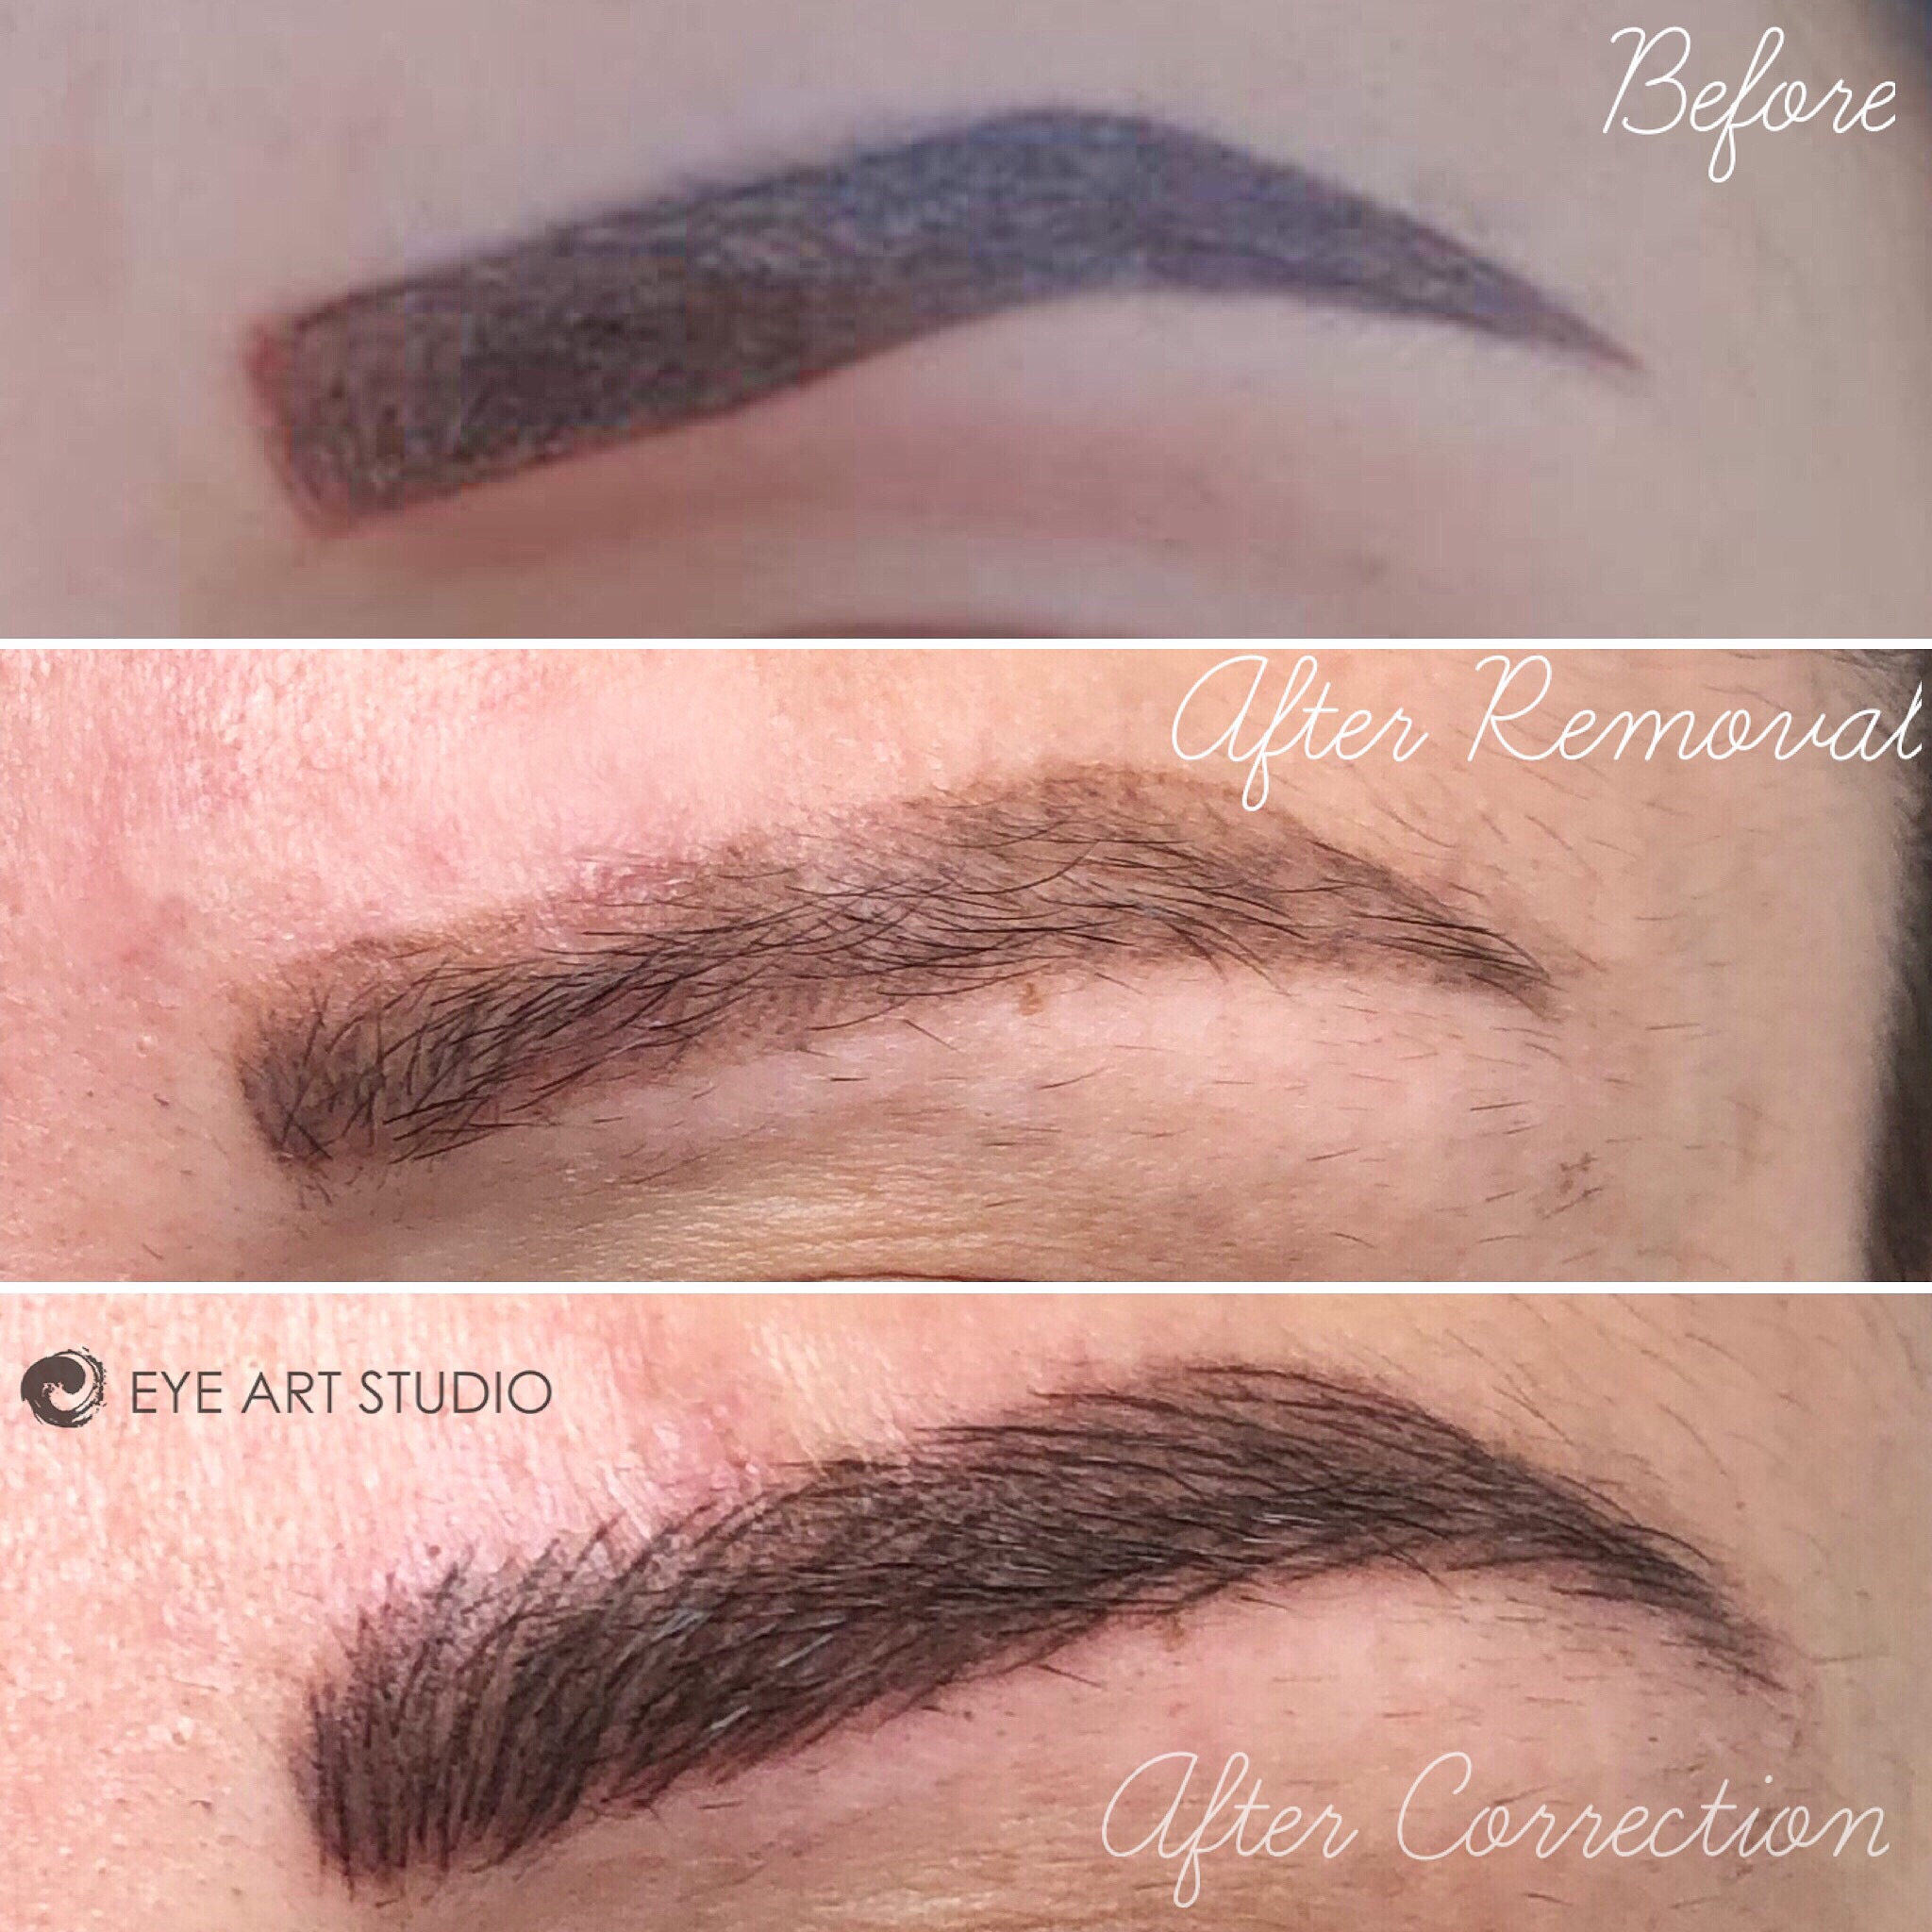 Eyebrow Tattoo Removal, Microblading Removal, Remove Microblading, Removal Brow Tattoo, Removing Botched Brow Tattoo